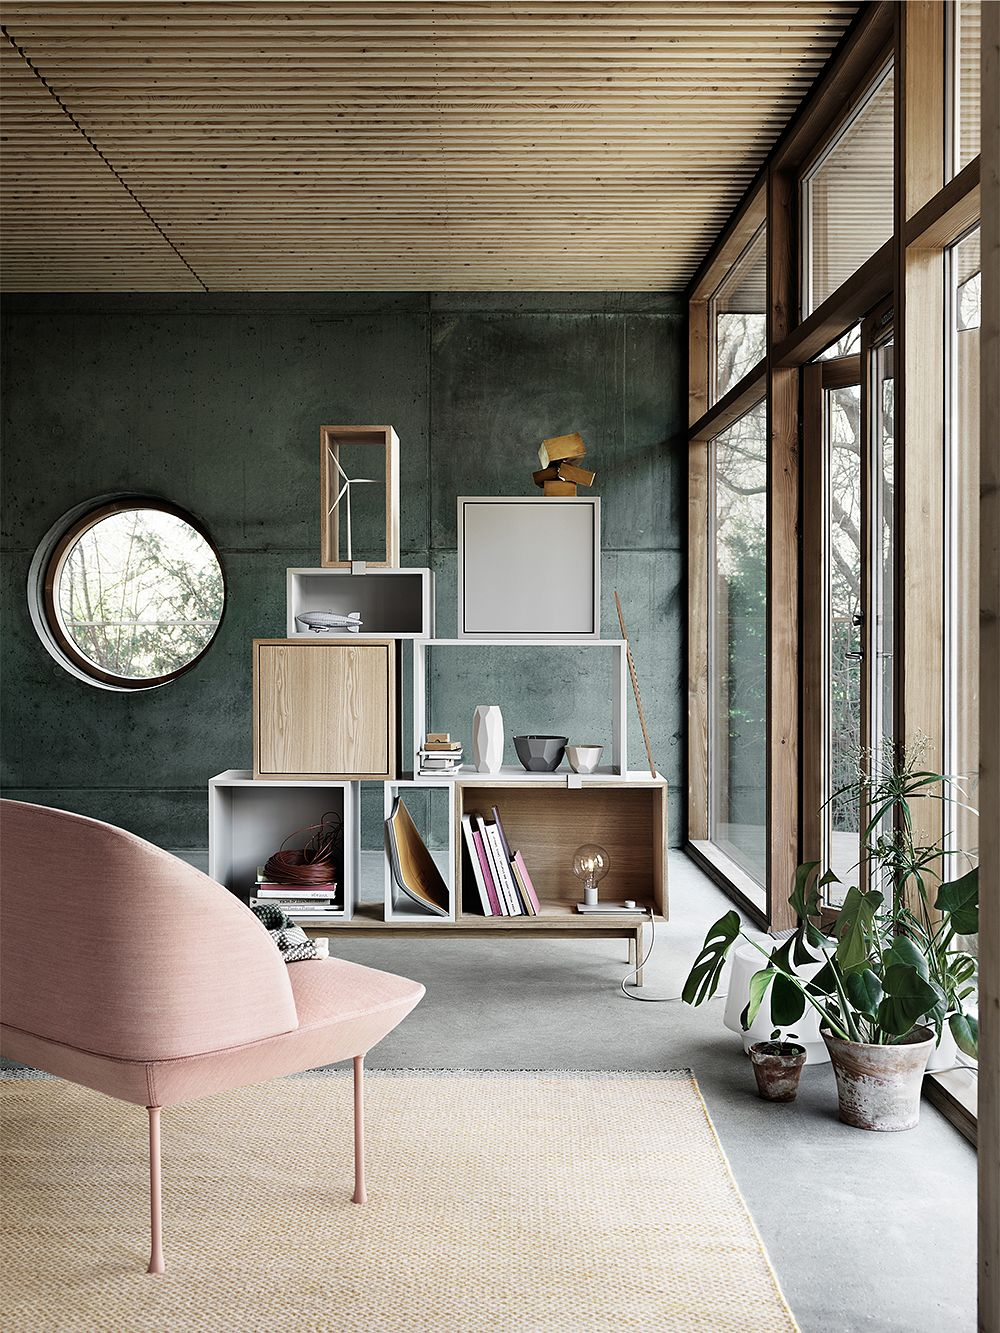 Muuto's Oslo lounge chair and Stacked shelving modules in living room decor.